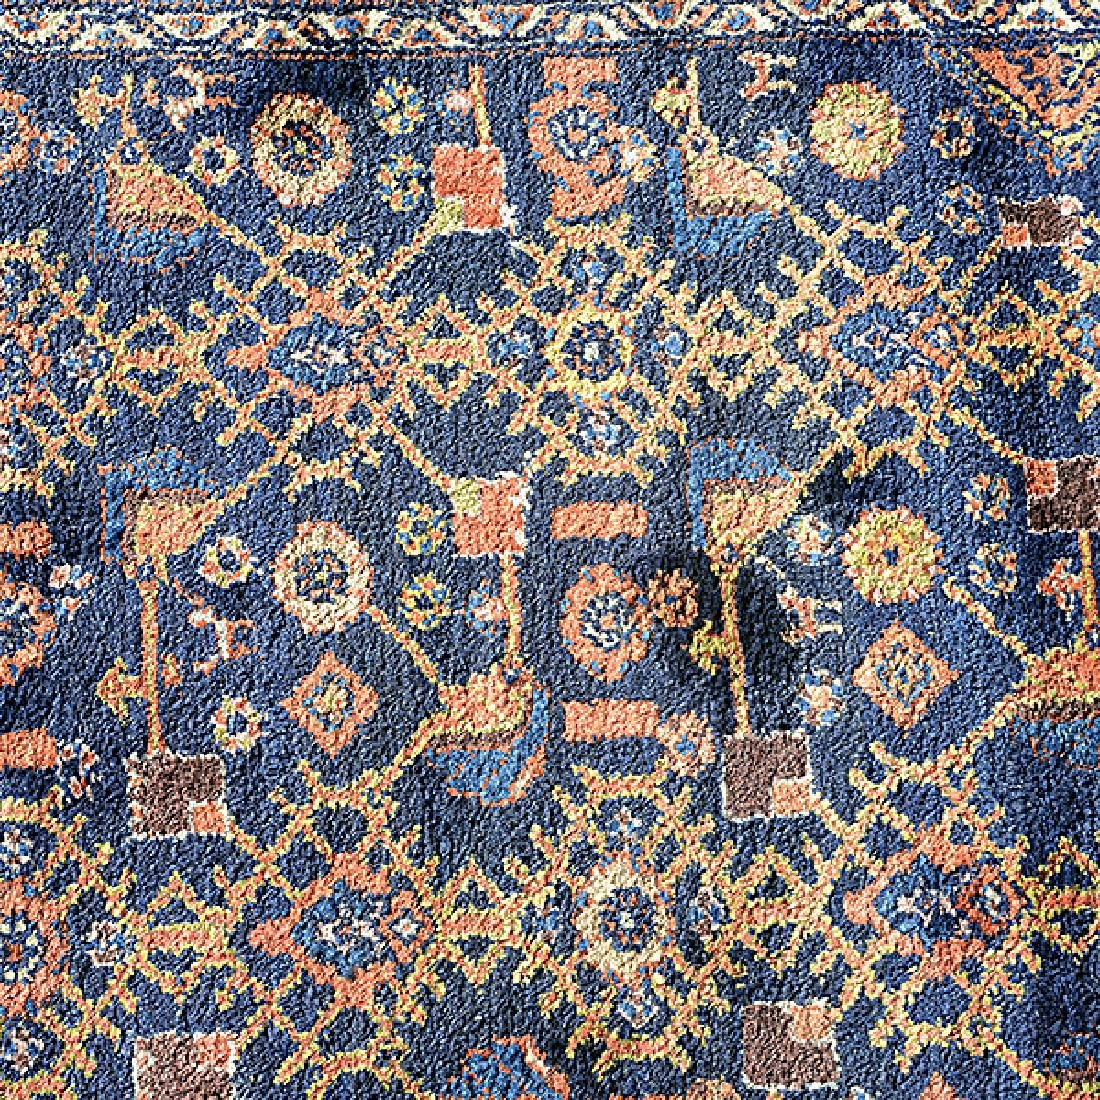 Hamadan Rug: 4 feet 5 inches x 6 feet 9 inches - 4